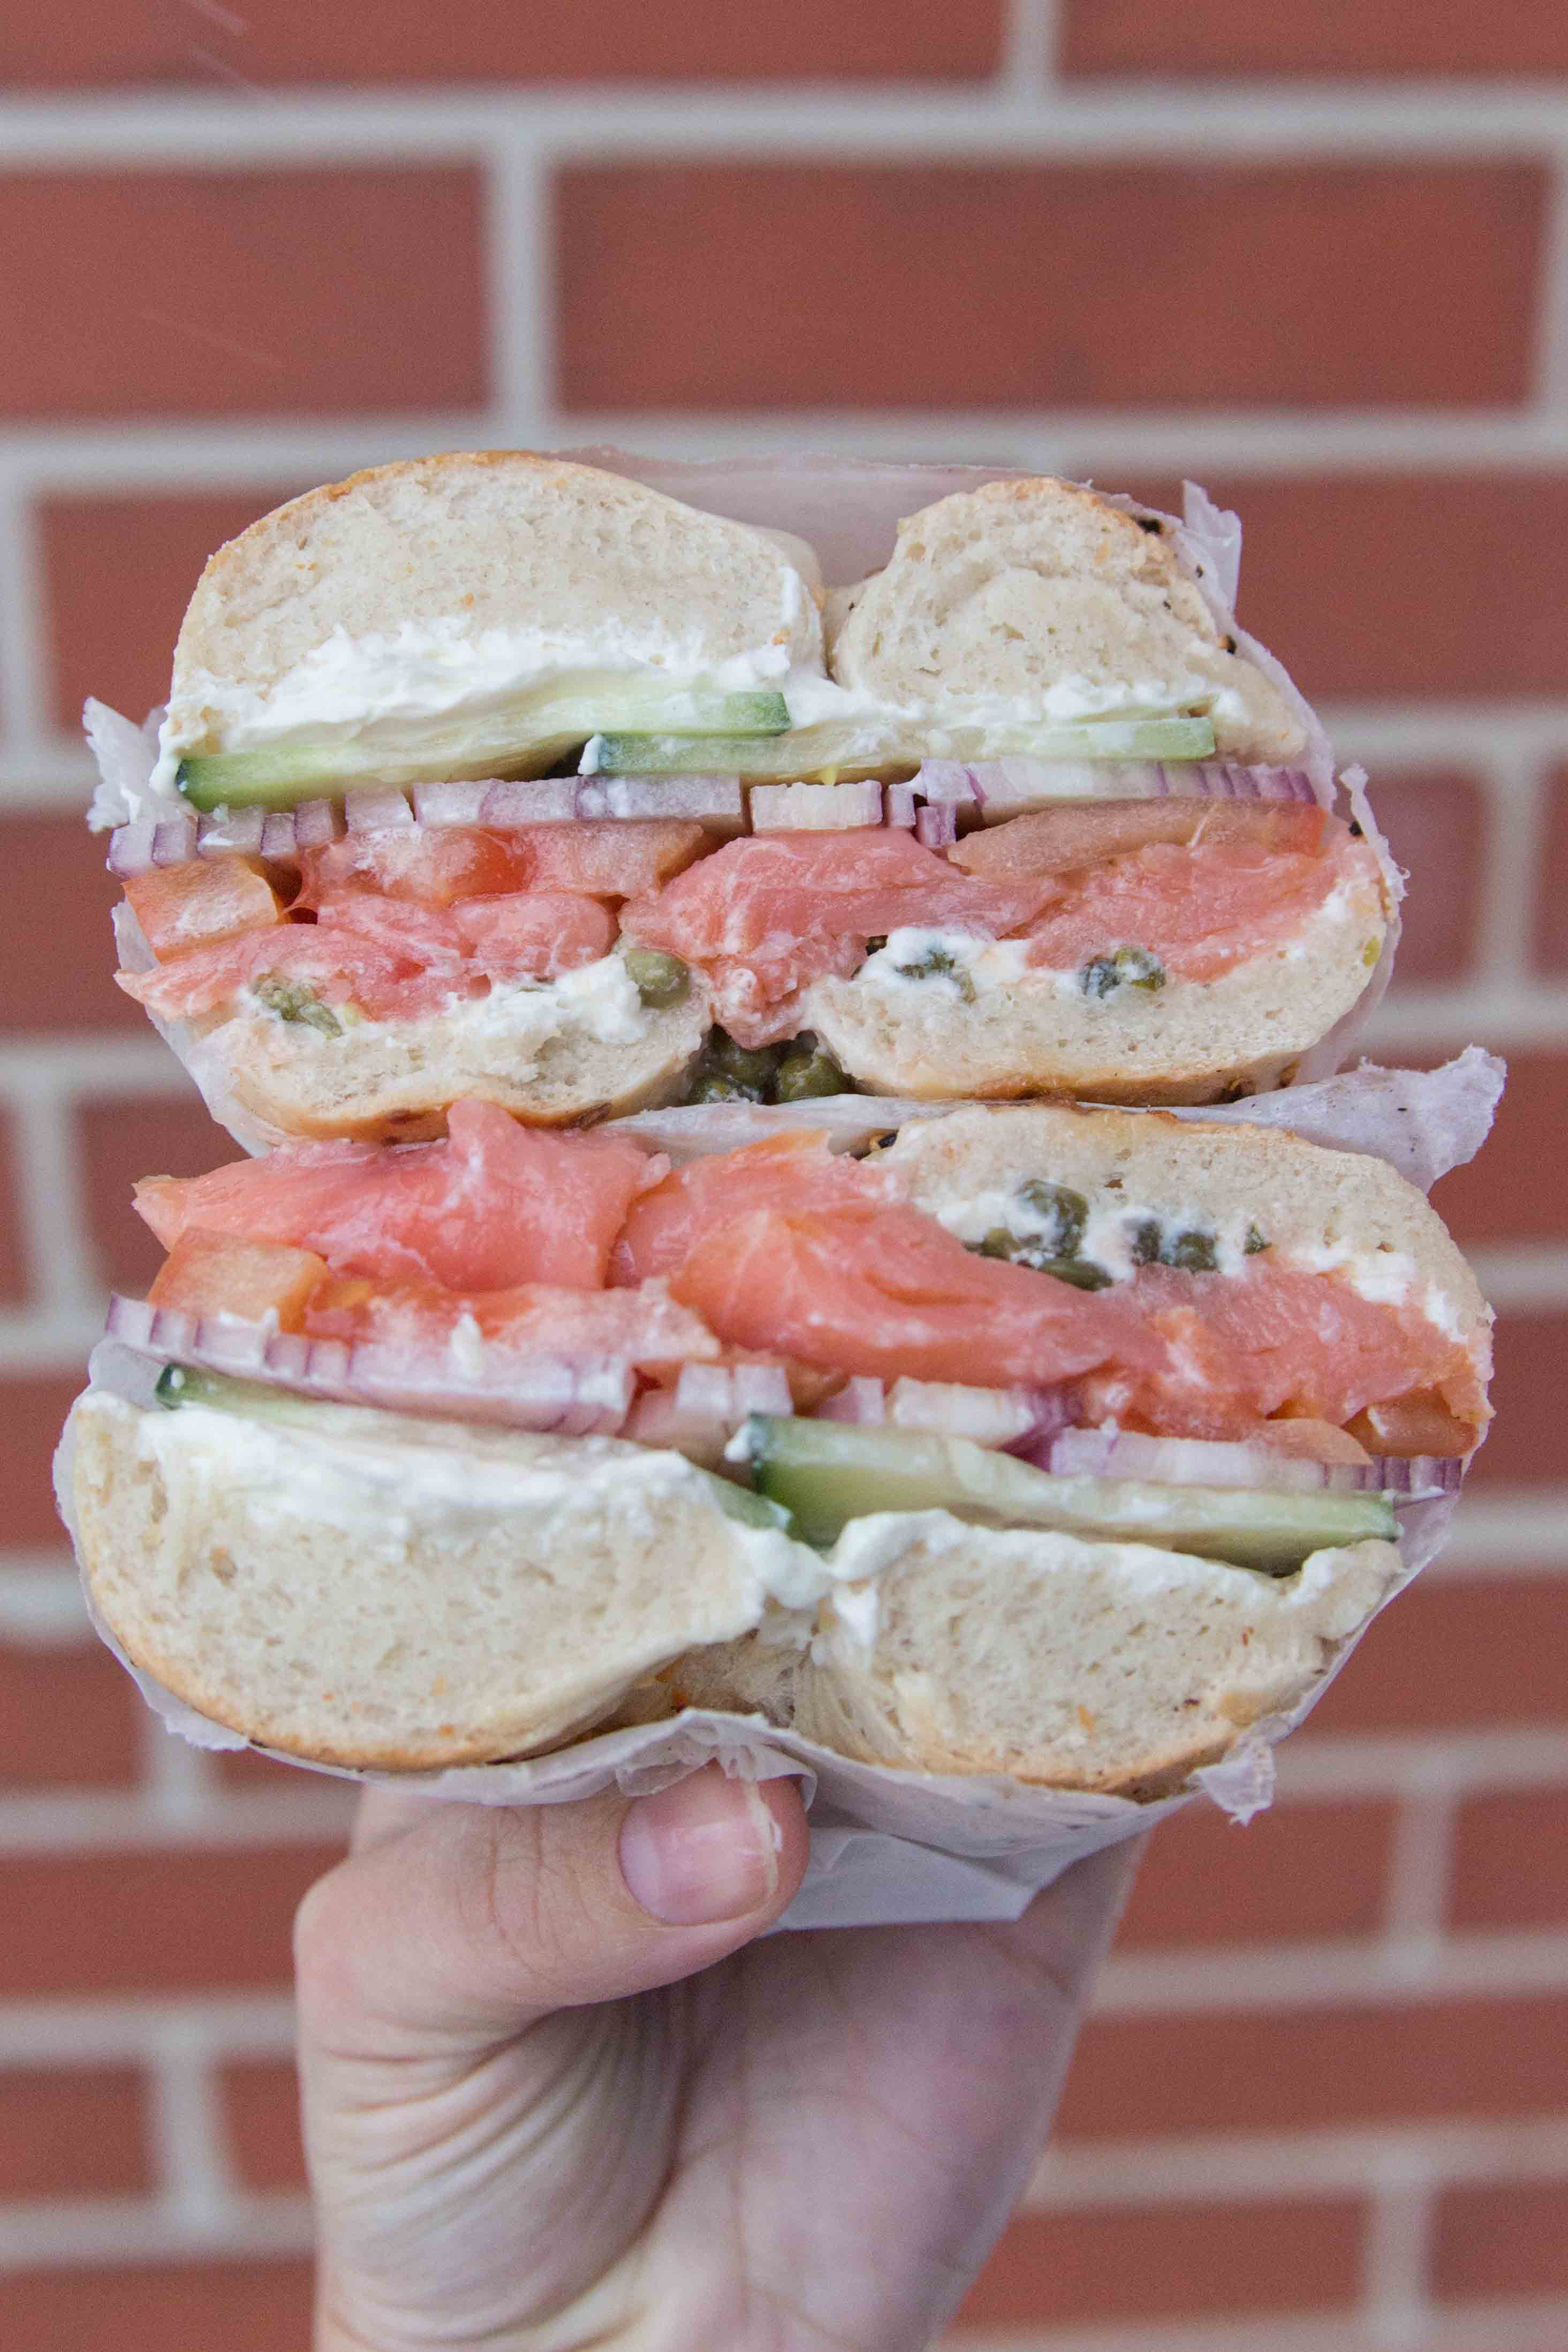 sandwich from New York Bagel & Bialy